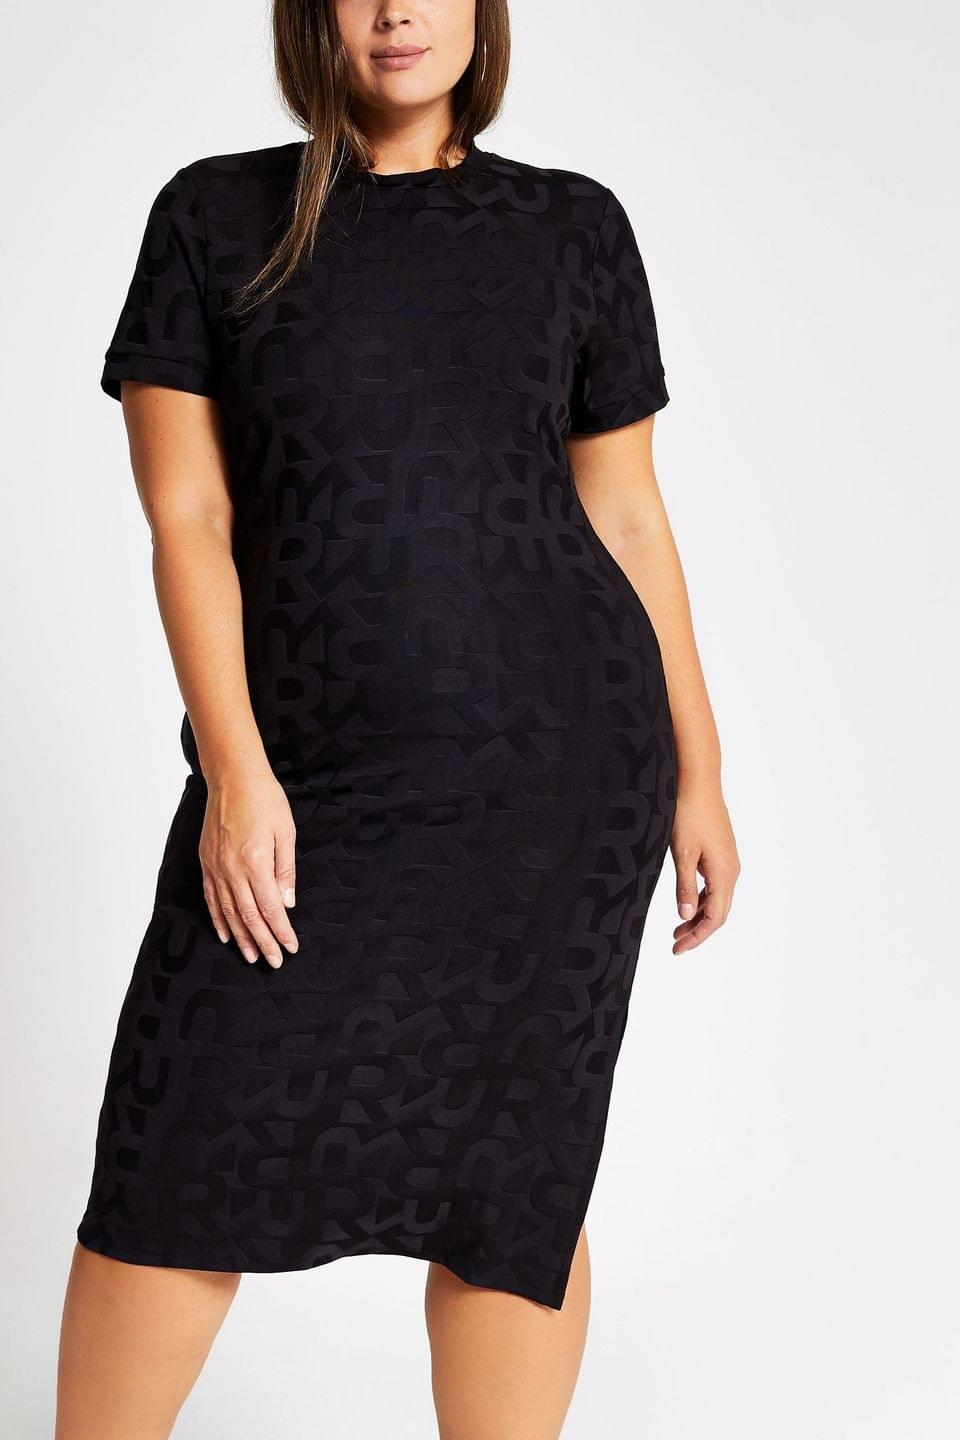 Women's River Island Curve Black Leo Jacquard Dress